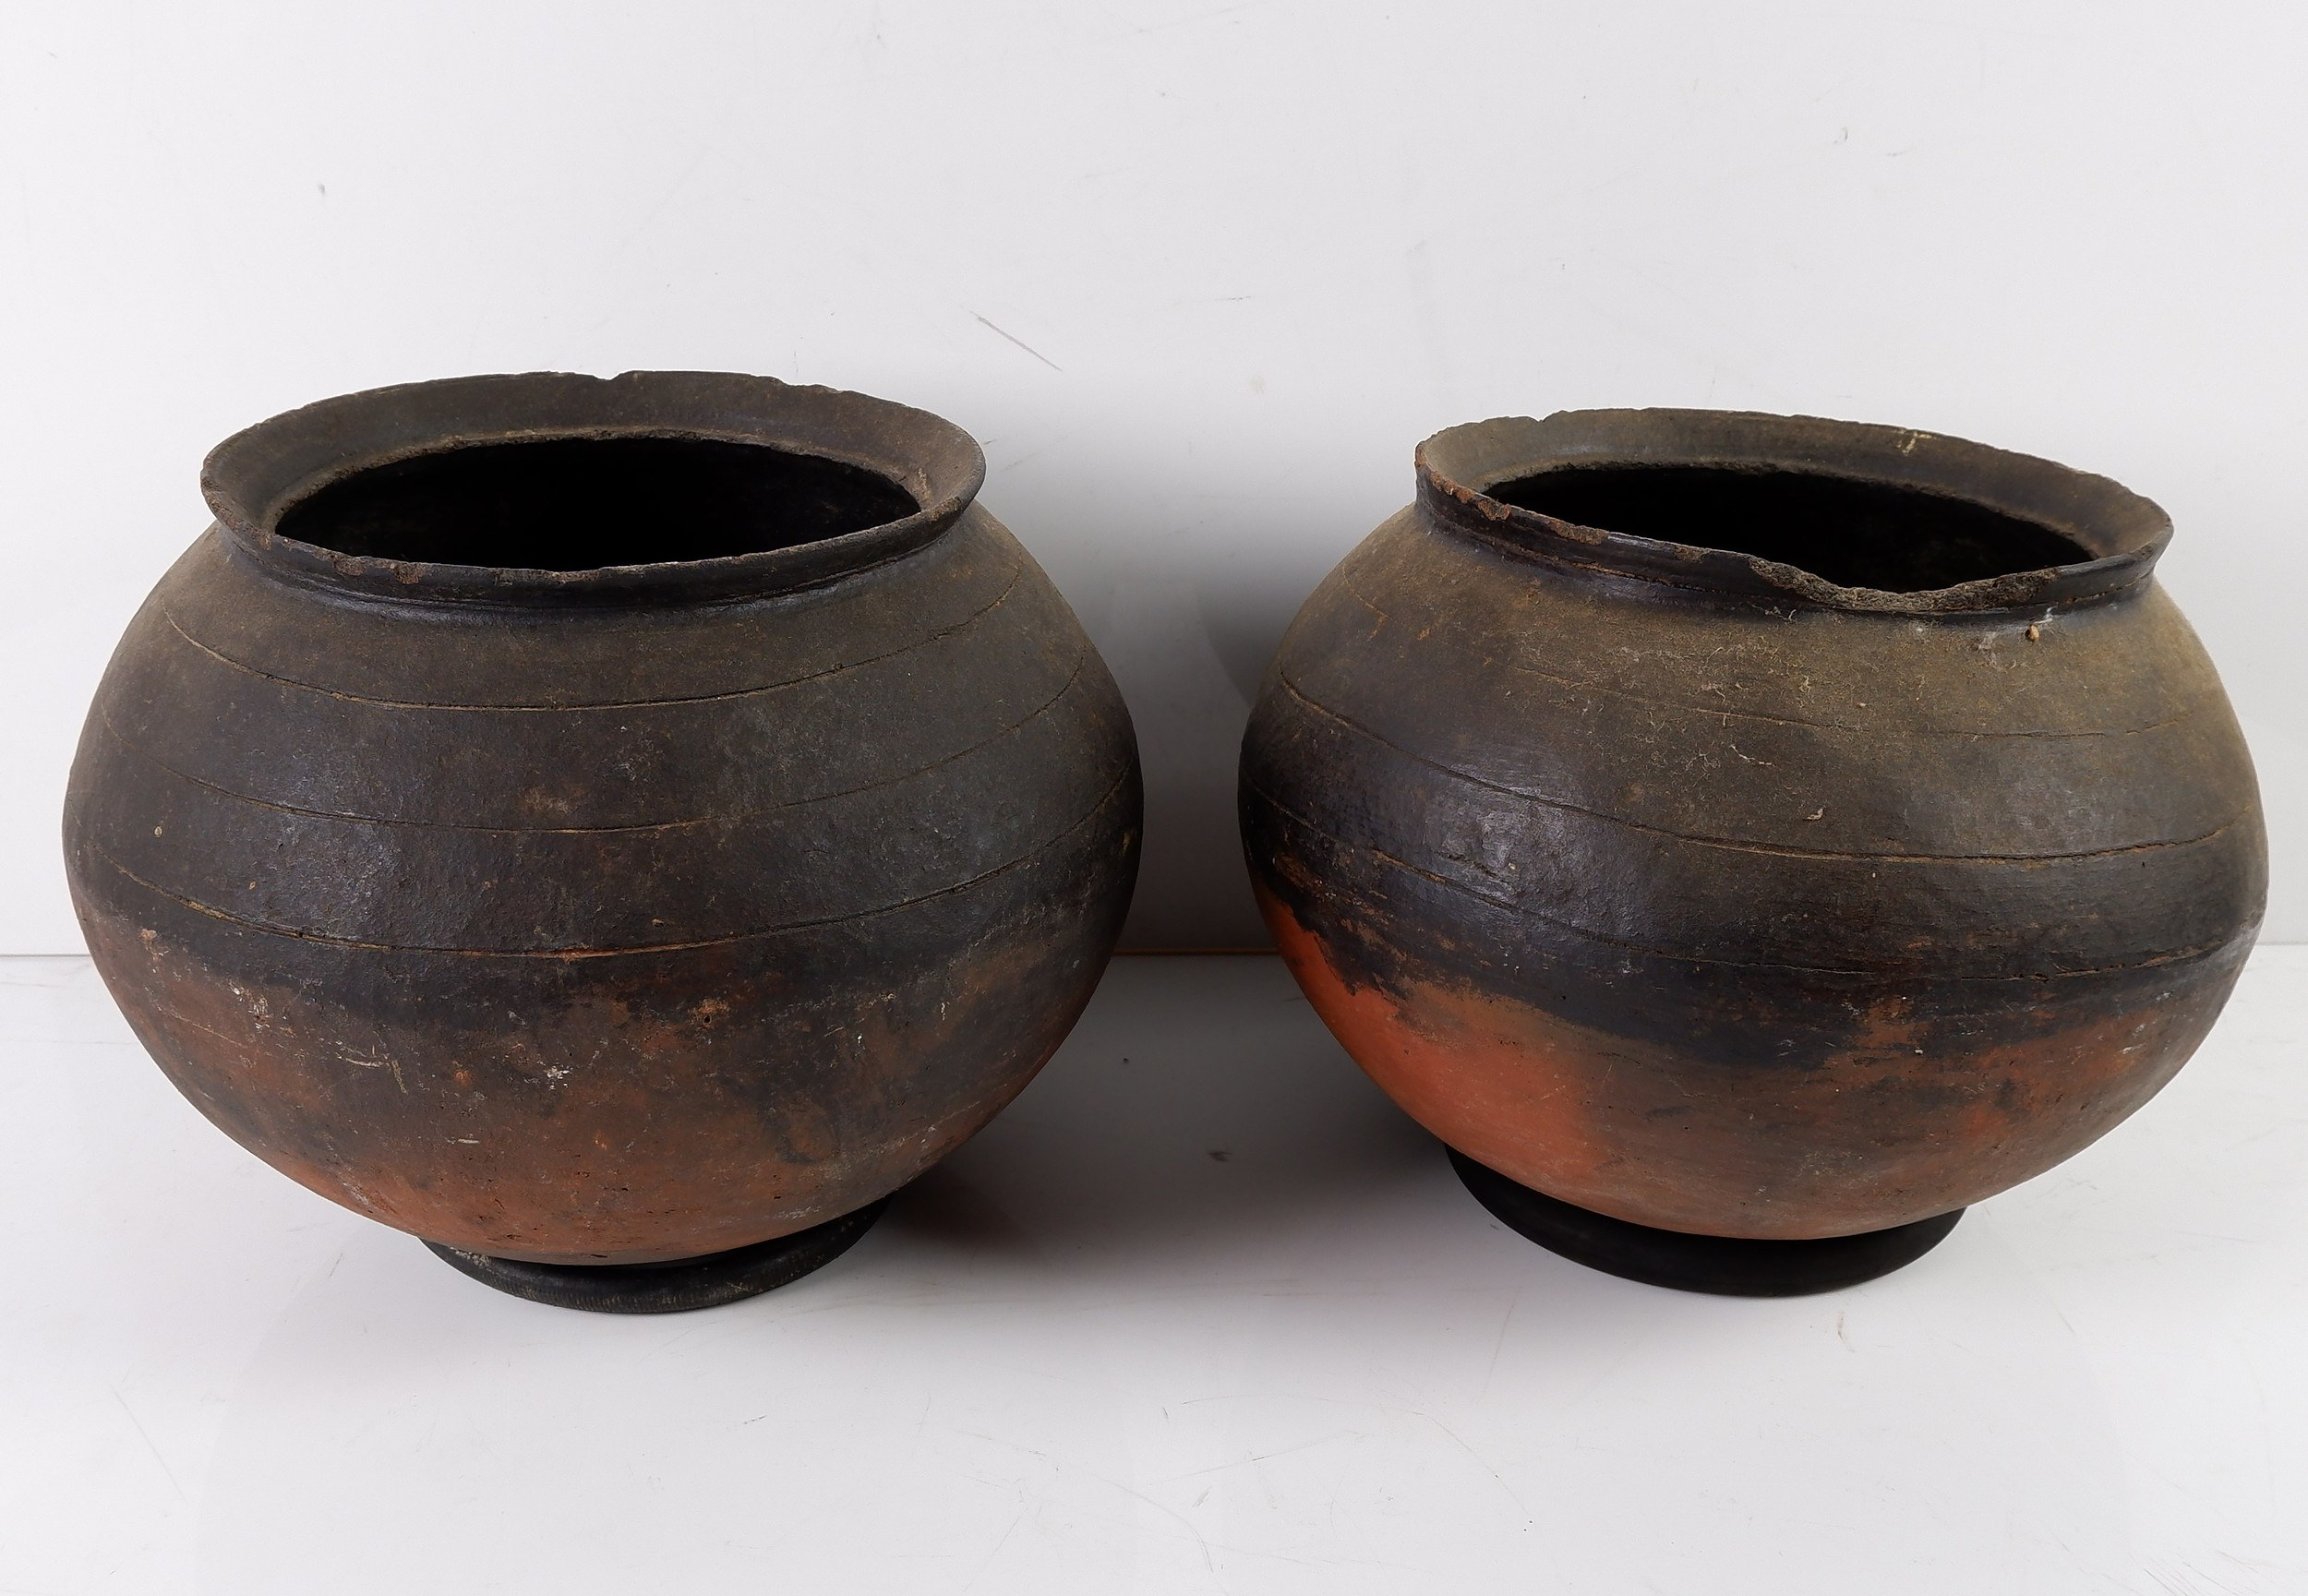 'Two African Woodfire Ceramic Cooking Pots Circa 1960s'